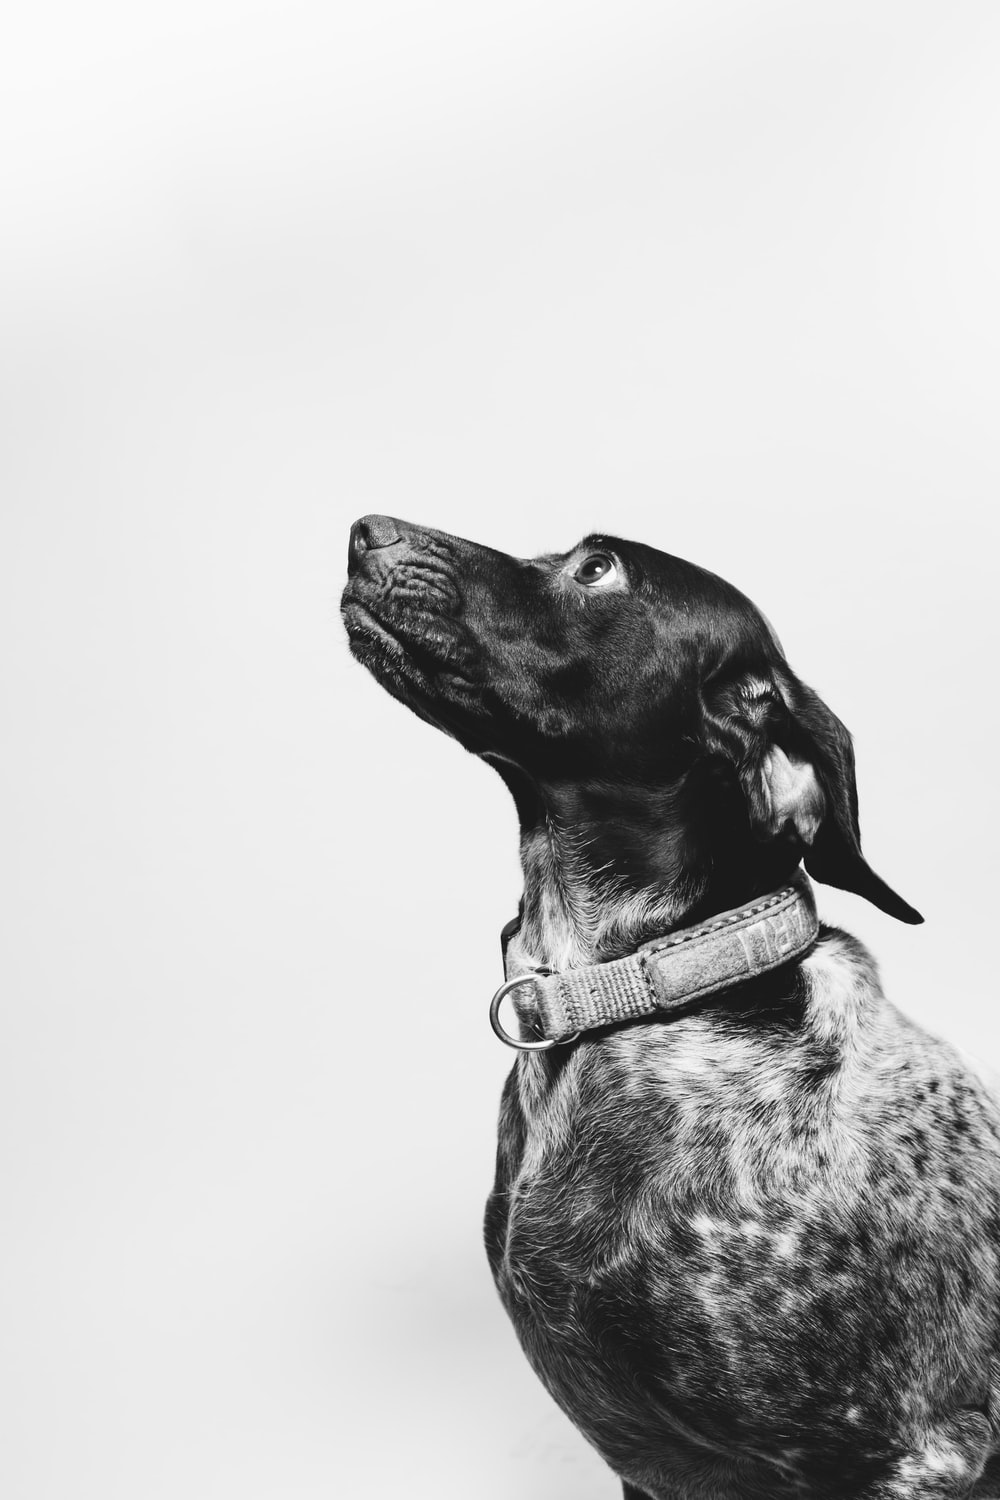 dog in grayscale photo